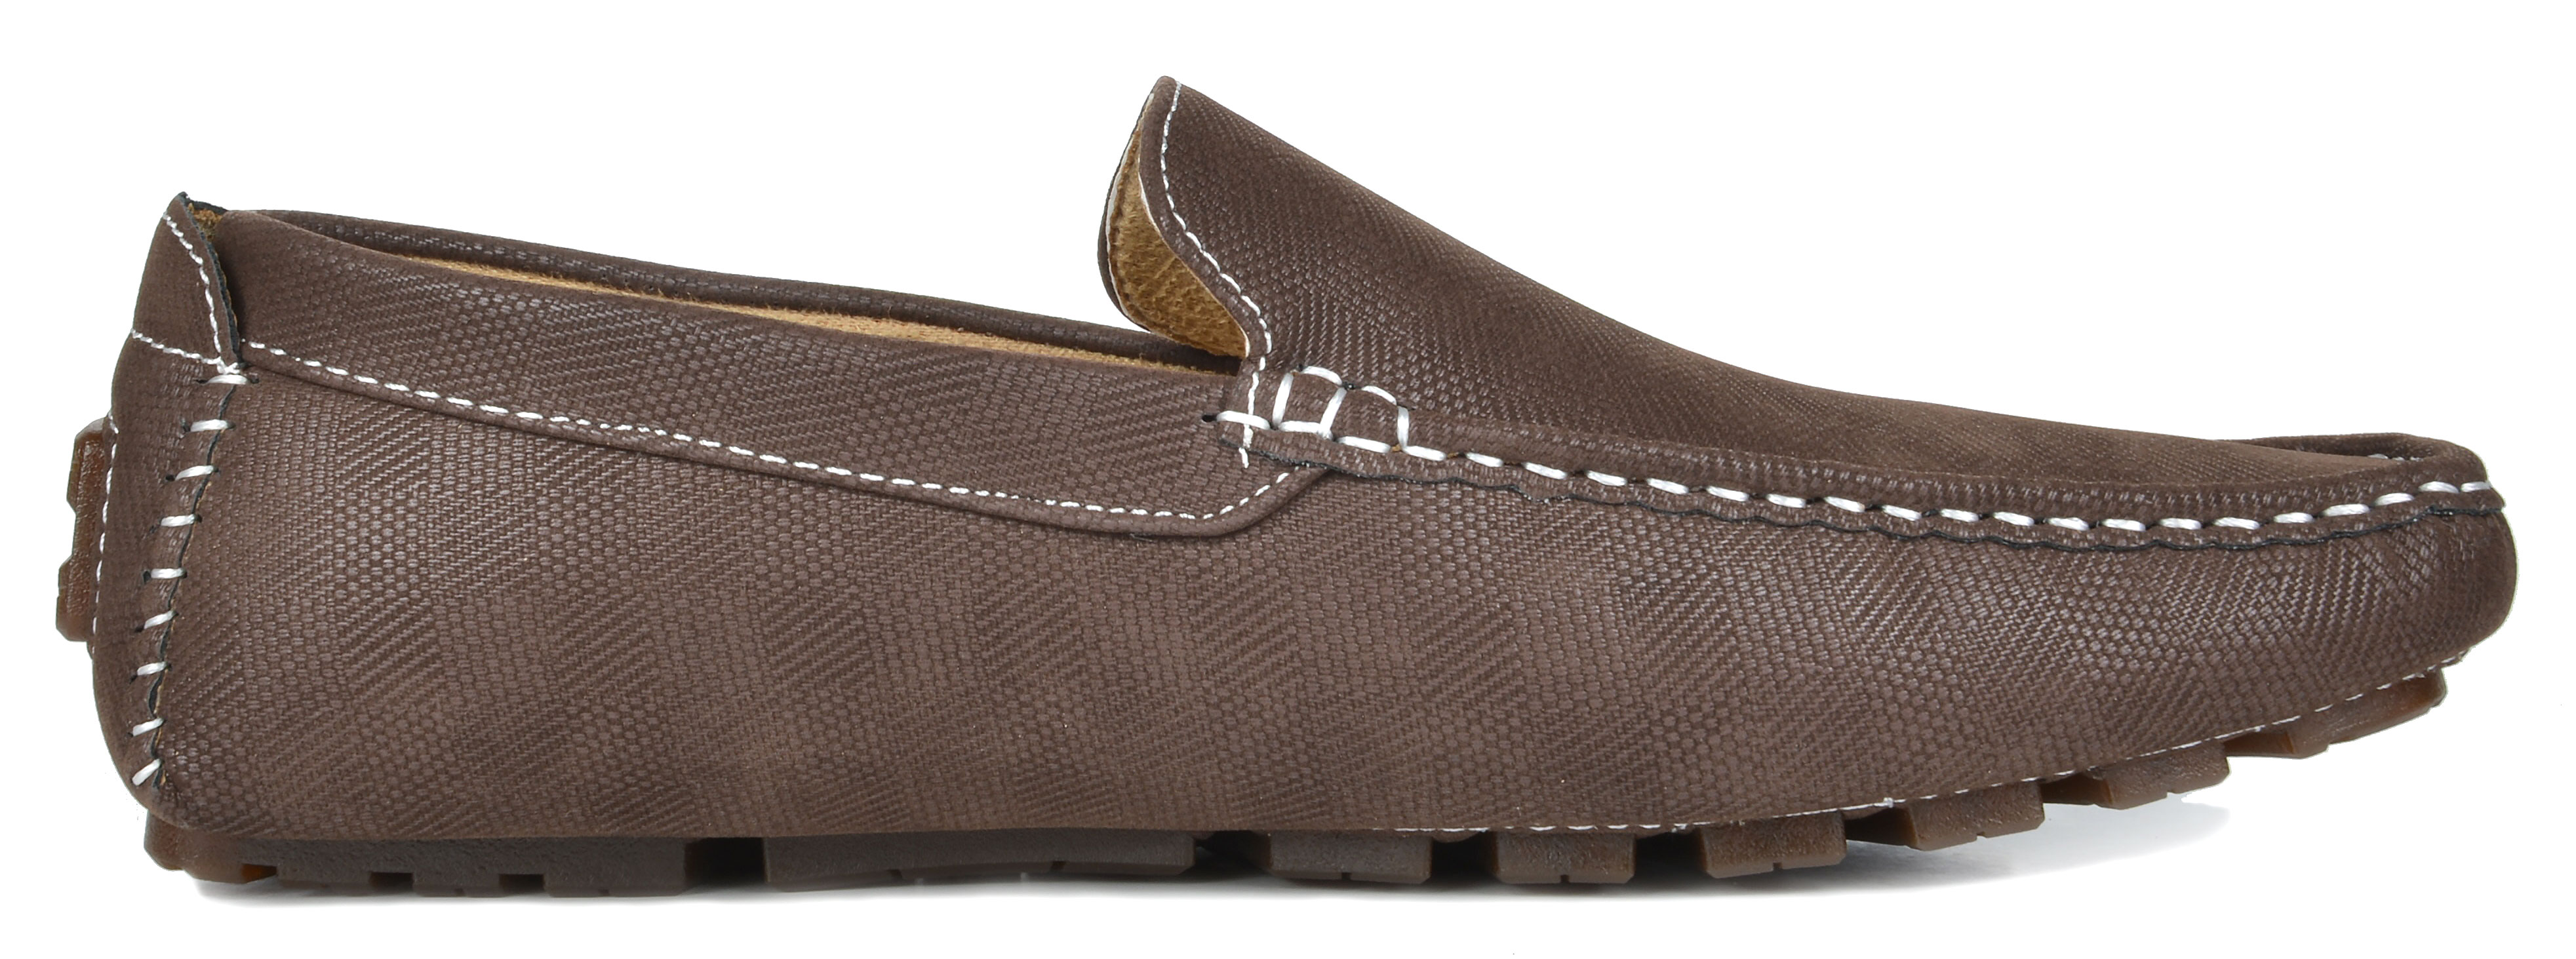 Bruno-Marc-Men-039-s-New-Classic-Fashion-Slip-on-Driving-Casual-Loafers-Boat-Shoes thumbnail 116